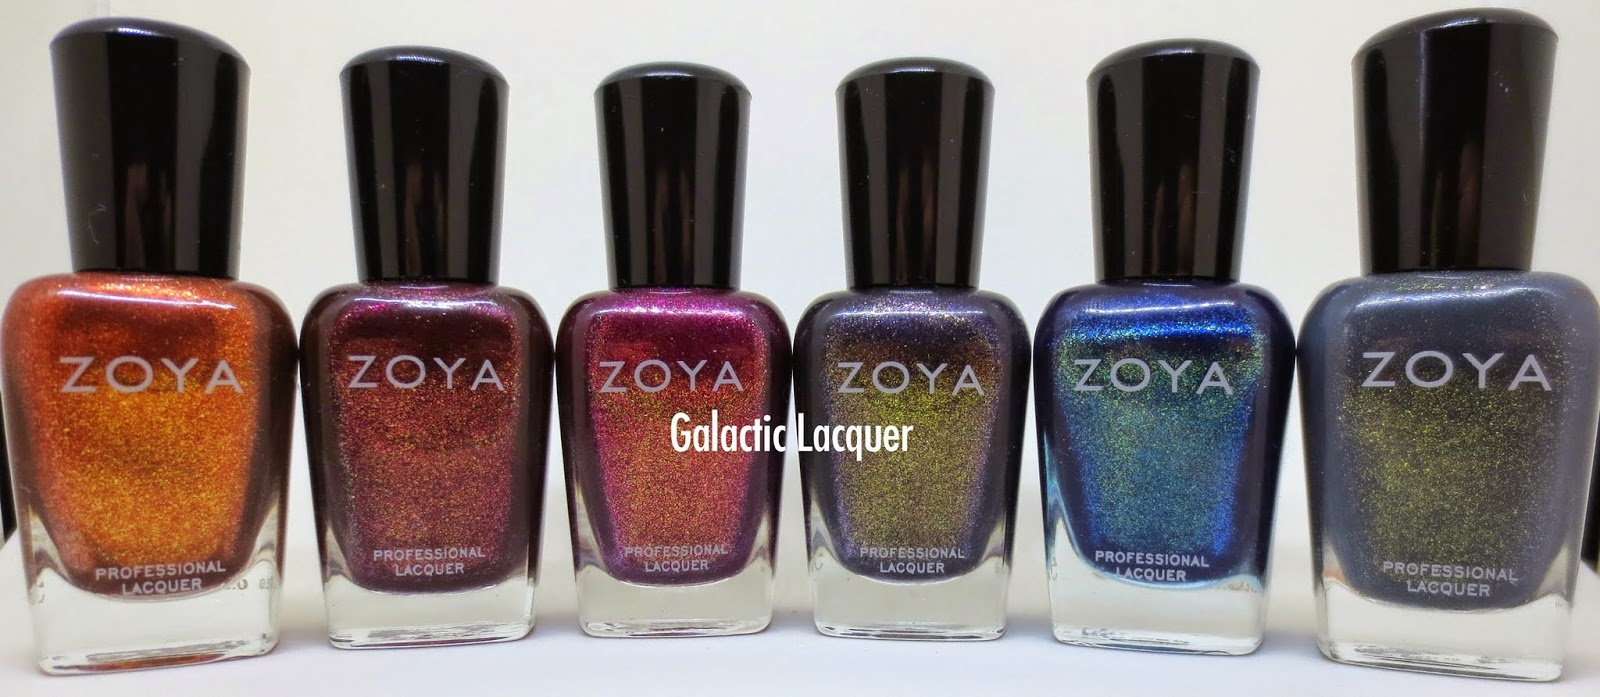 65b04f90e59 Galactic Lacquer  August 2014